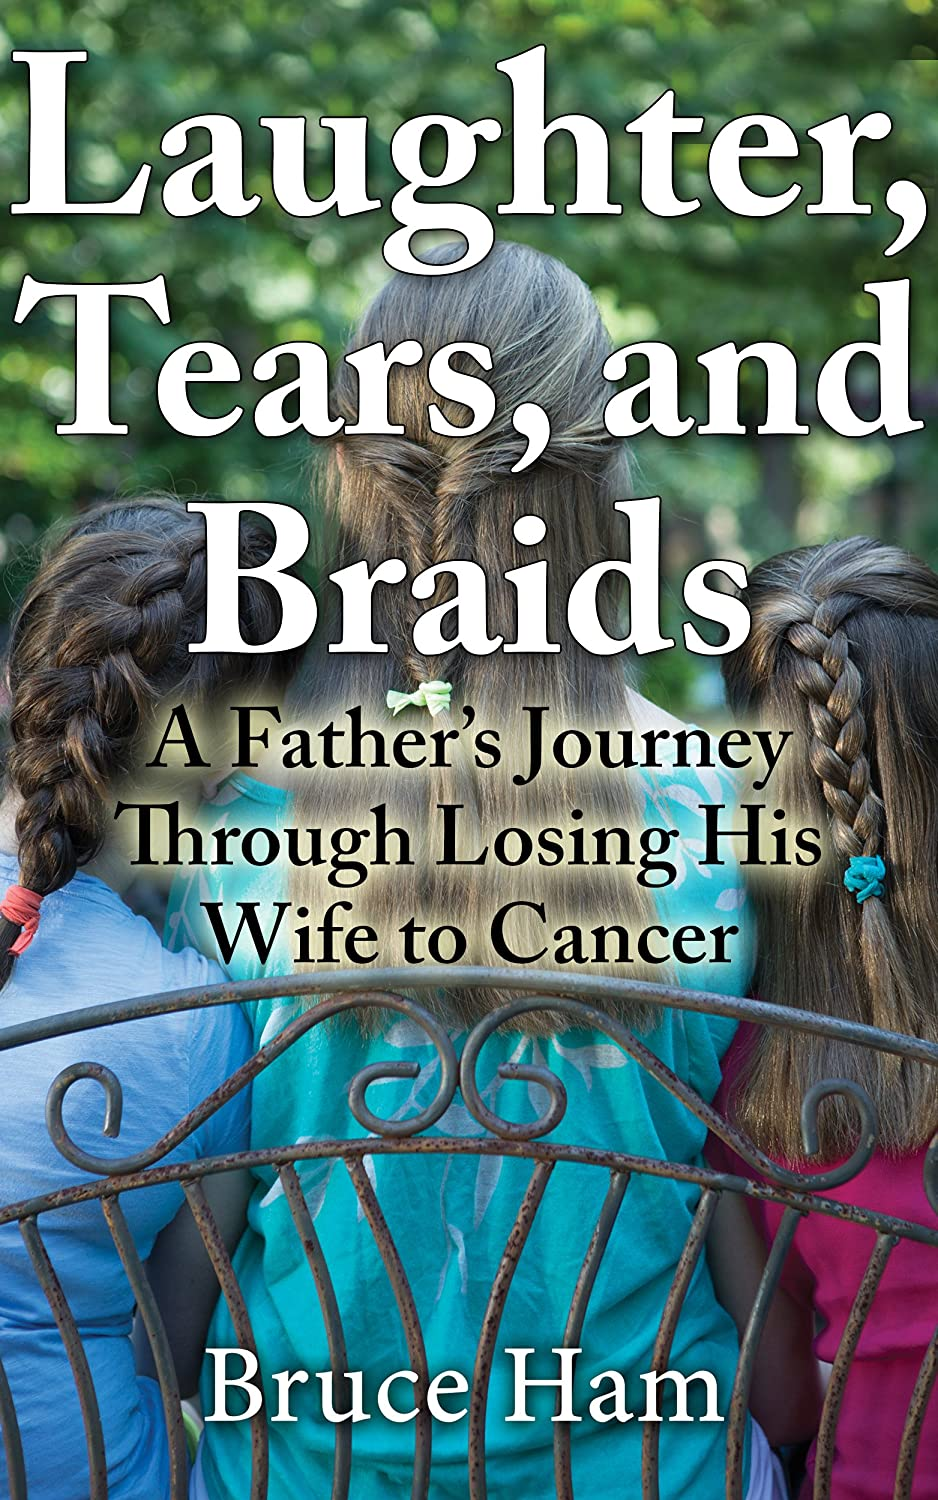 """Laughter, Tears, and Braids: A Father's Journey Through Losing His Wife to Cancer"" By Bruce Ham"